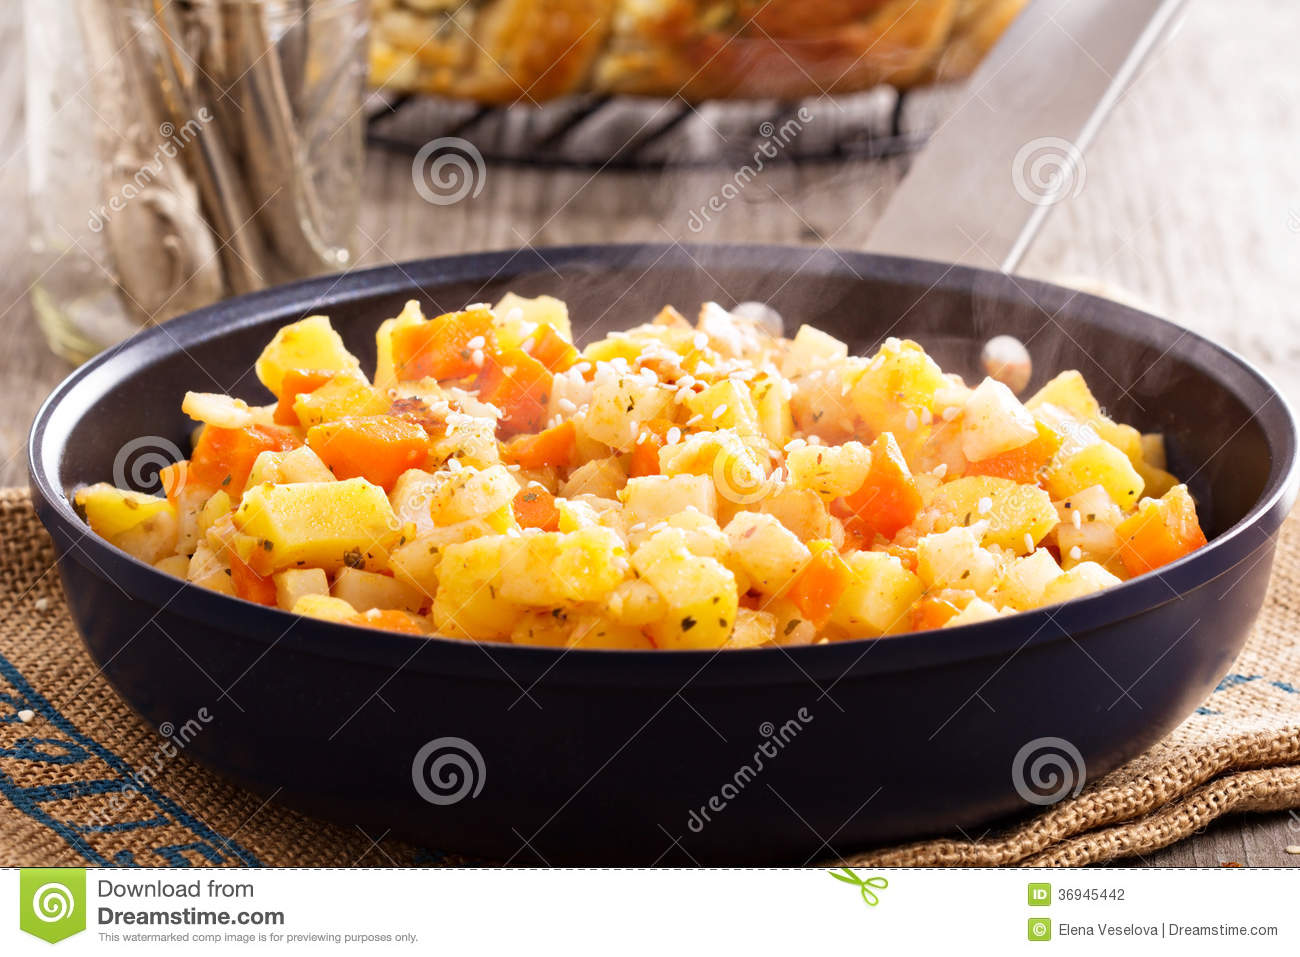 Apple and root vegetable hash with potato, carrots and celery root.